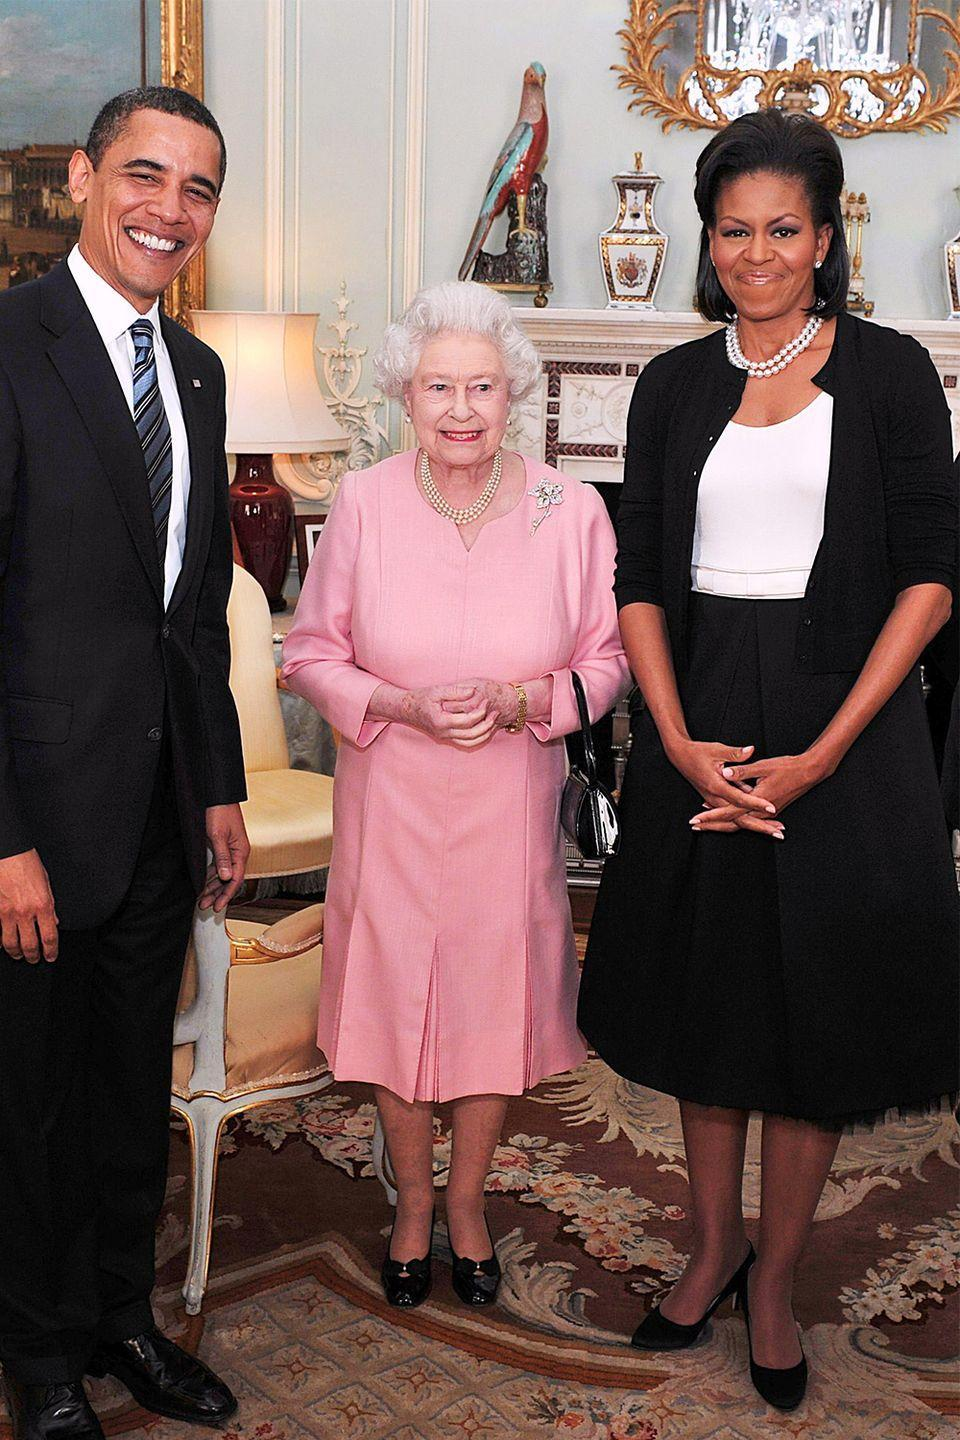 """<p>Touching members of the royal family is a big no-no, <em>especially</em> when it comes to Her Majesty. But when the matriarch met former First Lady Michelle Obama, Elizabeth appeared to fan girl just as hard as anyone would. The Queen uncharacteristically slung her arm around Obama during their photo op (which you can see for yourself, <a href=""""https://www.youtube.com/watch?v=eU_0hyjXRaM"""" rel=""""nofollow noopener"""" target=""""_blank"""" data-ylk=""""slk:here"""" class=""""link rapid-noclick-resp"""">here</a>).</p>"""